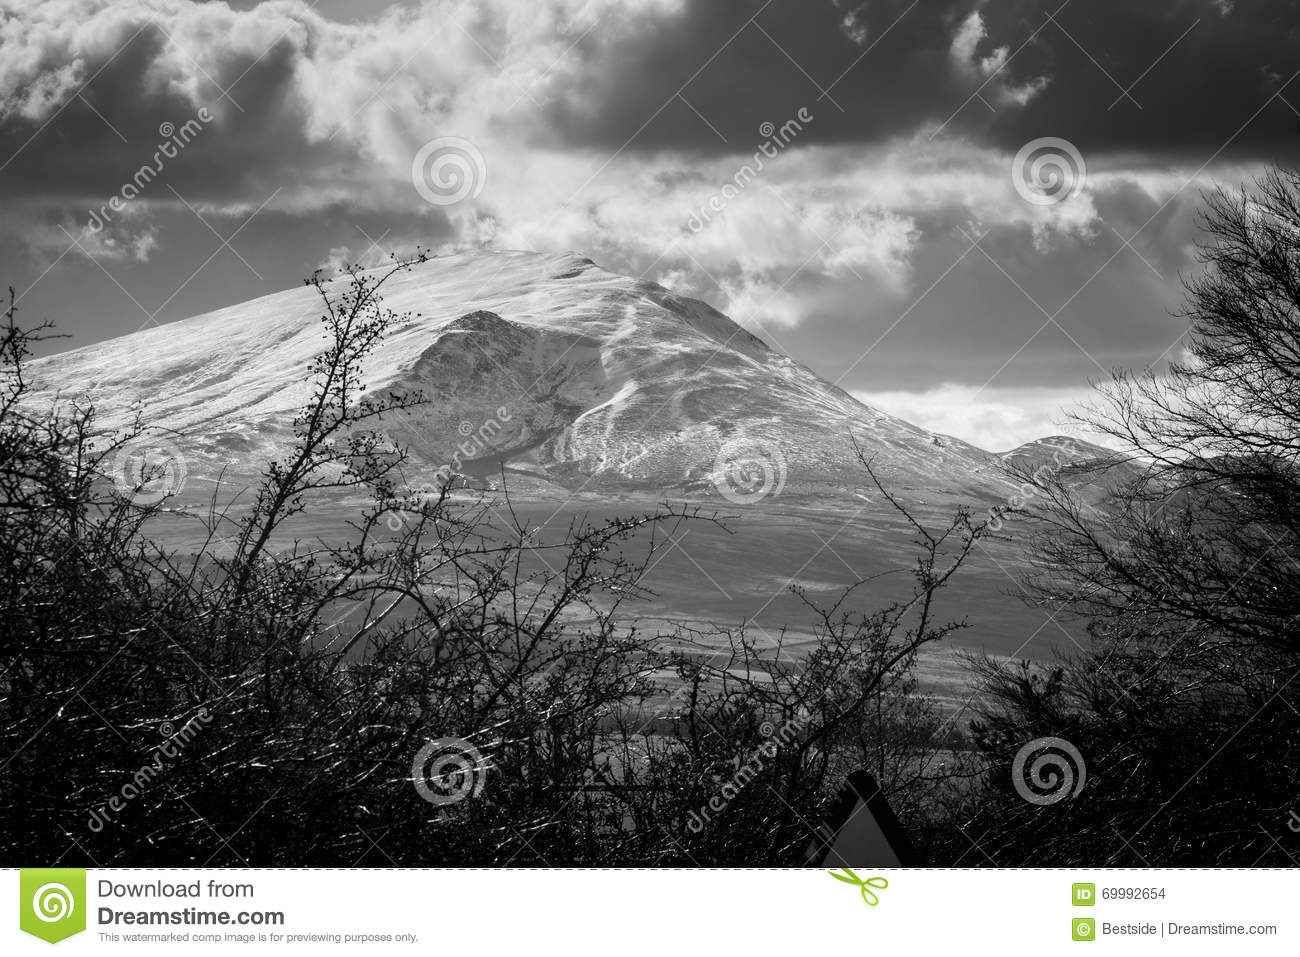 Black and white landscape snowy mountains in the lake district cumbria nobody in photo